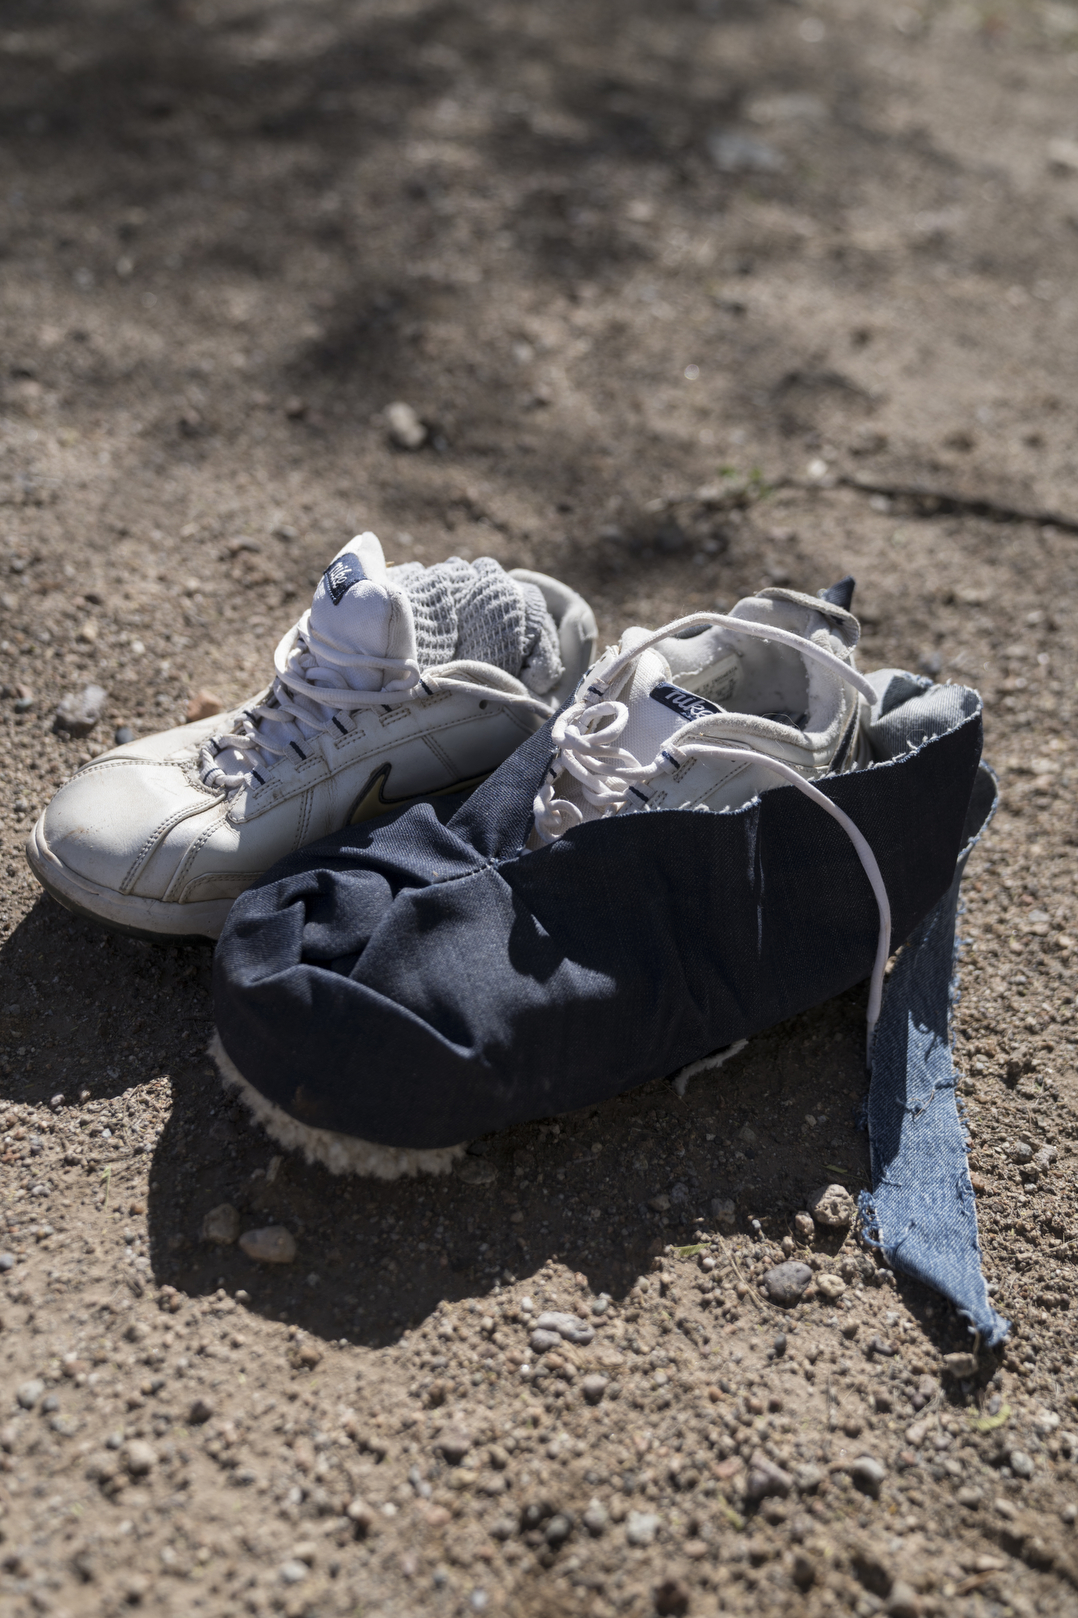 TUCSON, AZ - MARCH 13, 2020:Detail of items that Dora Rodriguez collected in July 2019 from the site where she was rescued in 1980 as a young asylum seeker crossing the Sonoran desert. Dora went back to the location with artist Alvaro Enciso in order to lay a cross at the site.In 1980 19-year-old Dora Rodriguez, from El Salvador, made the difficult journey of crossing into the US near Lukeville, AZ on foot. Of the 26 individuals she crossed the Sonoran desert with 13 died in the gruelling heat, one of the pre-eminent events that led to the Sanctuary Movement. Dora eventually naturalised in the US and started an advocacy group, Salvavision Rescue Arizona, to support asylum-seekers. On a weekly basis Dora visits asylum seekers in detention centres, writes them letters, fundraises and brings donated supplies to the migrant camps on the Mexican side of the US - Mexico border. Photo by Kitra Cahana/MAPS for The Intercept